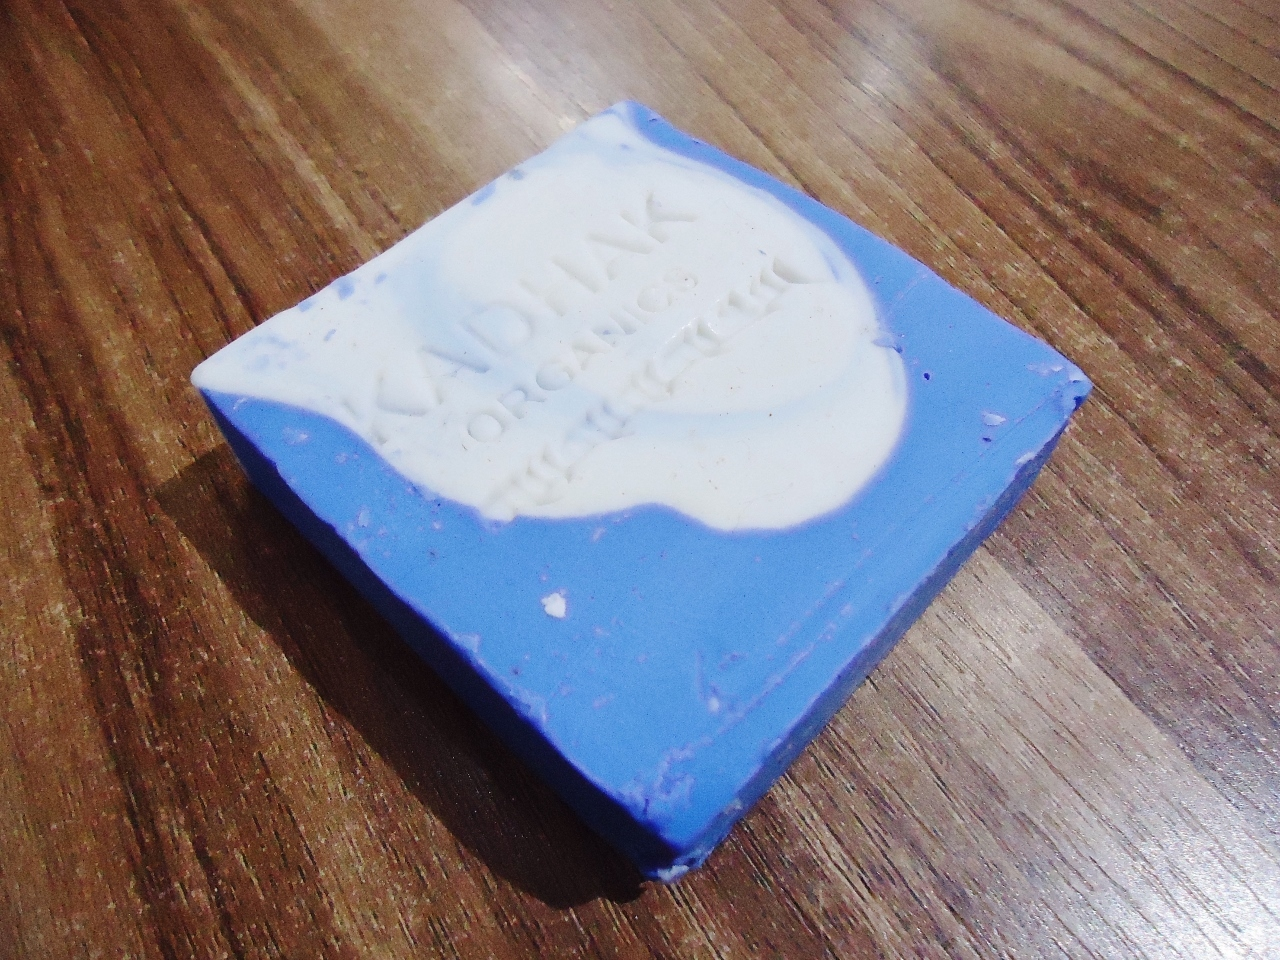 <p>Kadhak Sky Blue Yak Butter Soap</p>